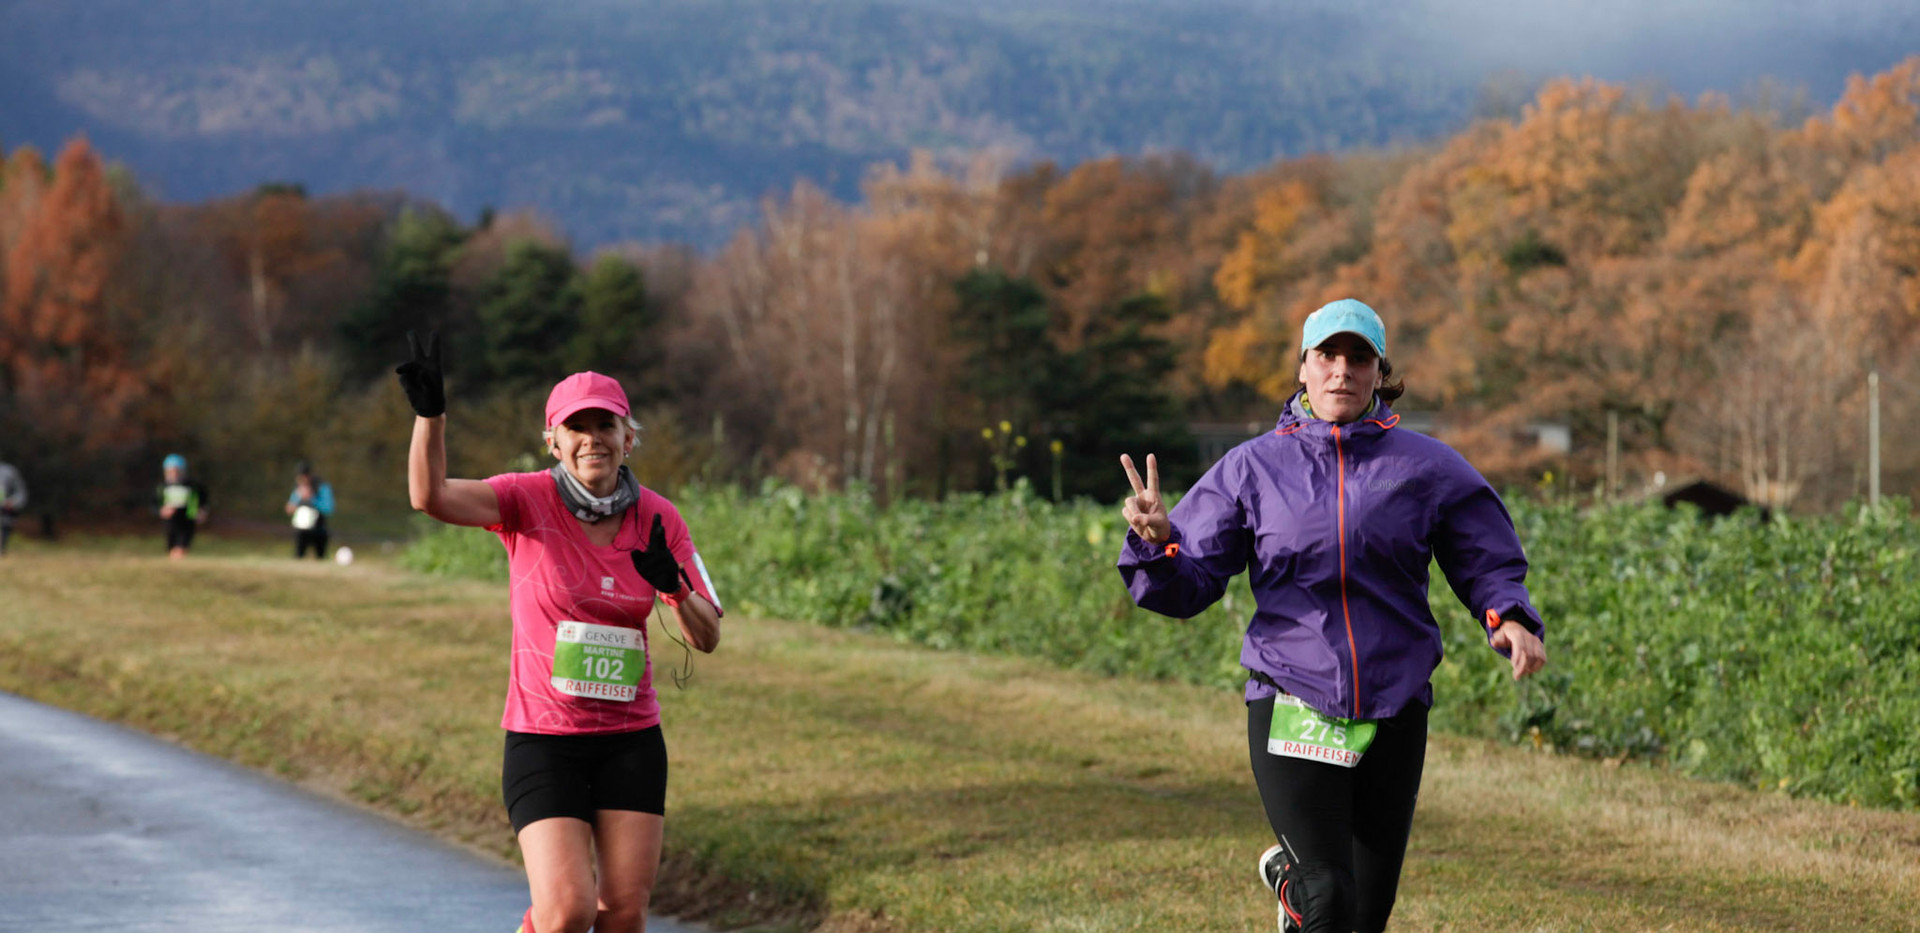 foulees_automnales_meyrin_parcours-10km_